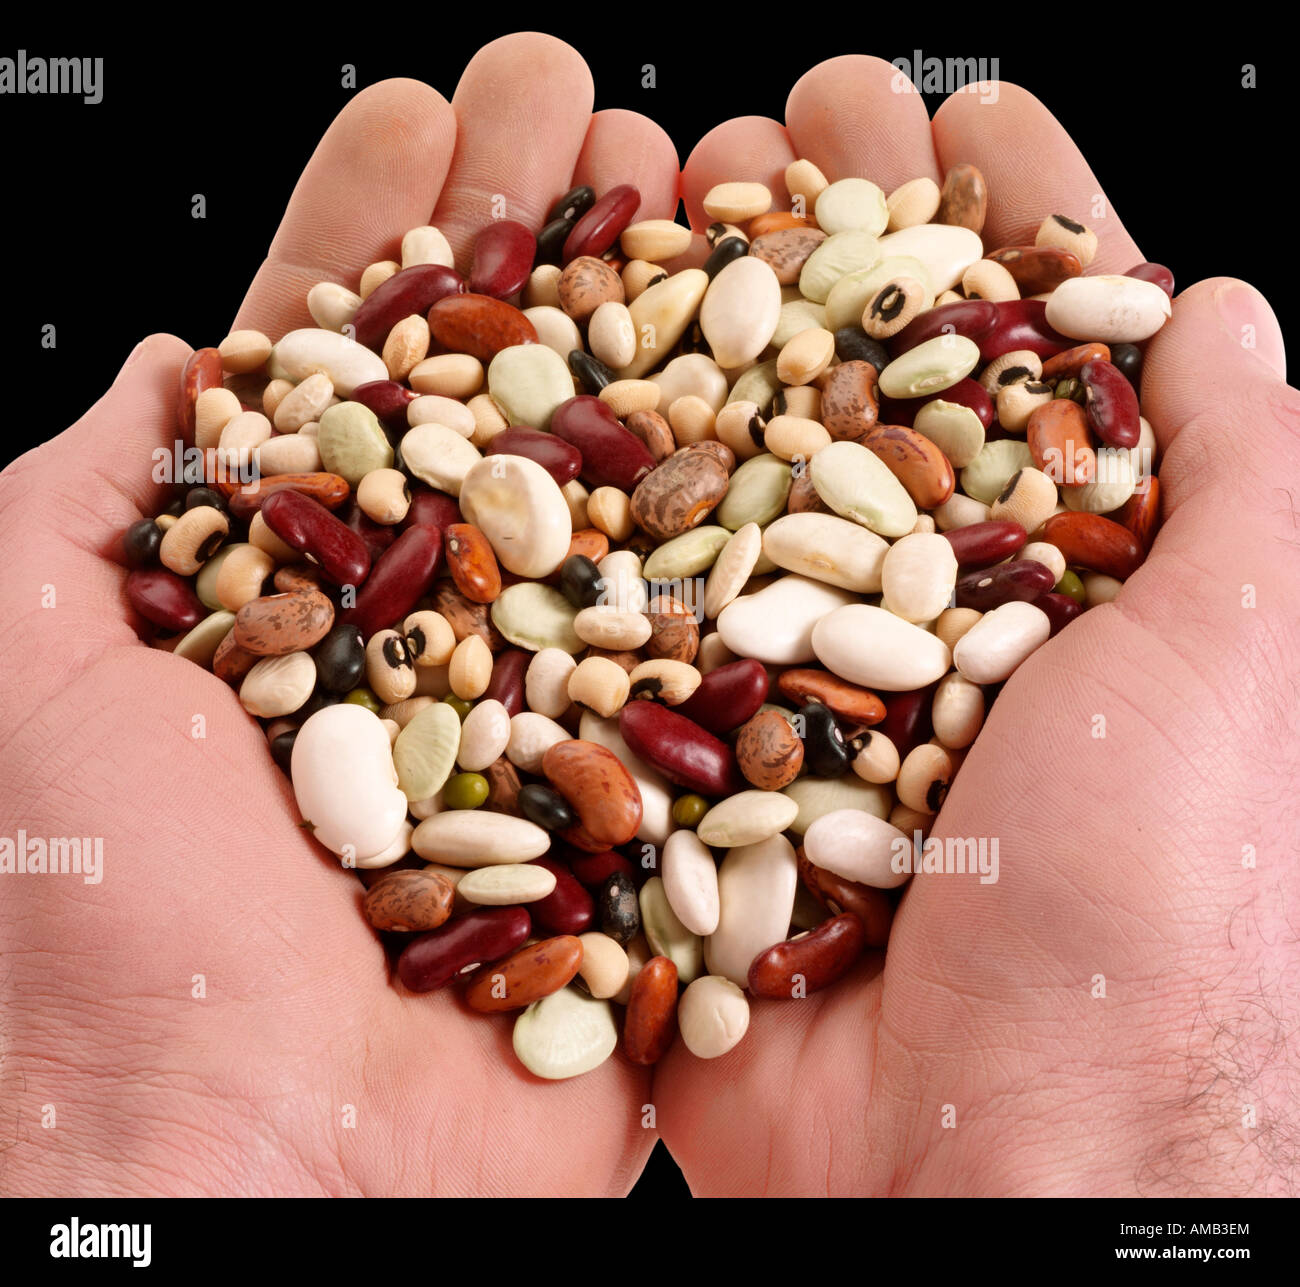 HANDFUL OF MIXED BEANS - Stock Image